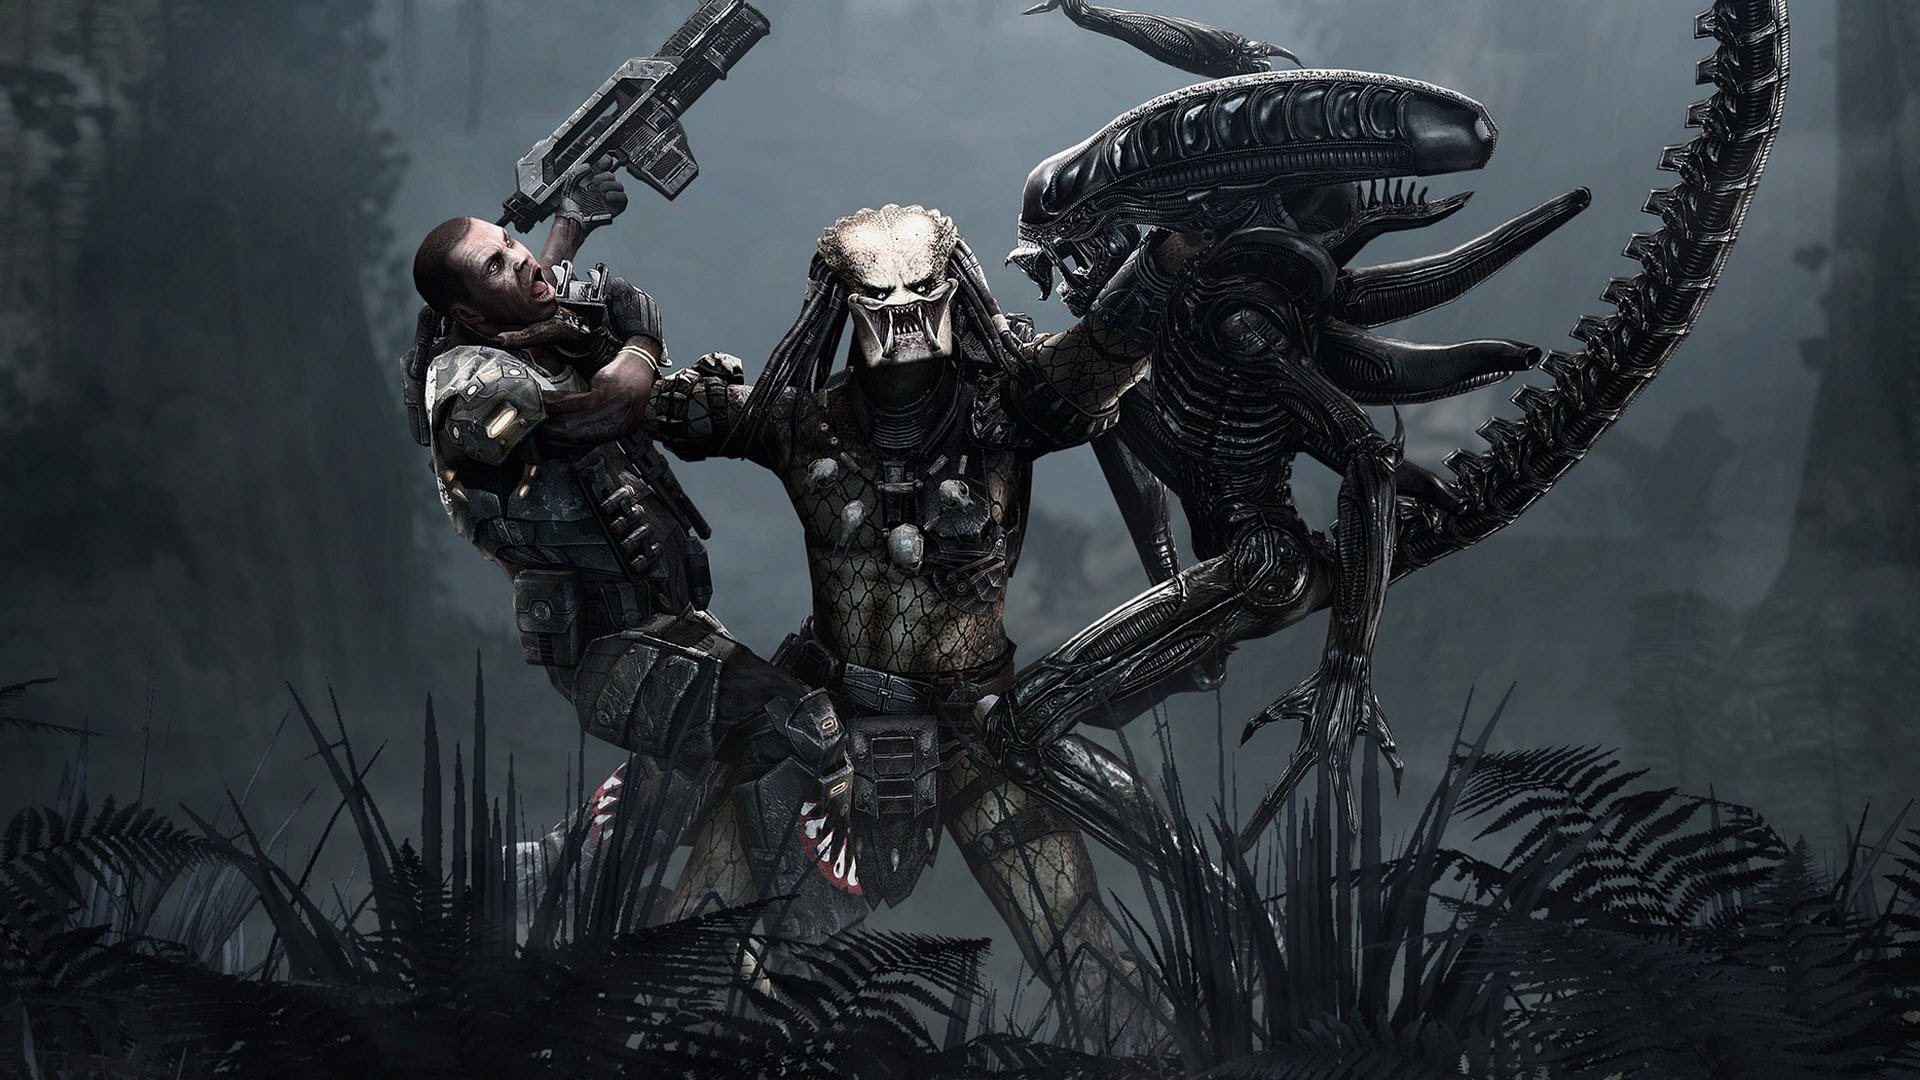 aliens vs predator game wallpaper background